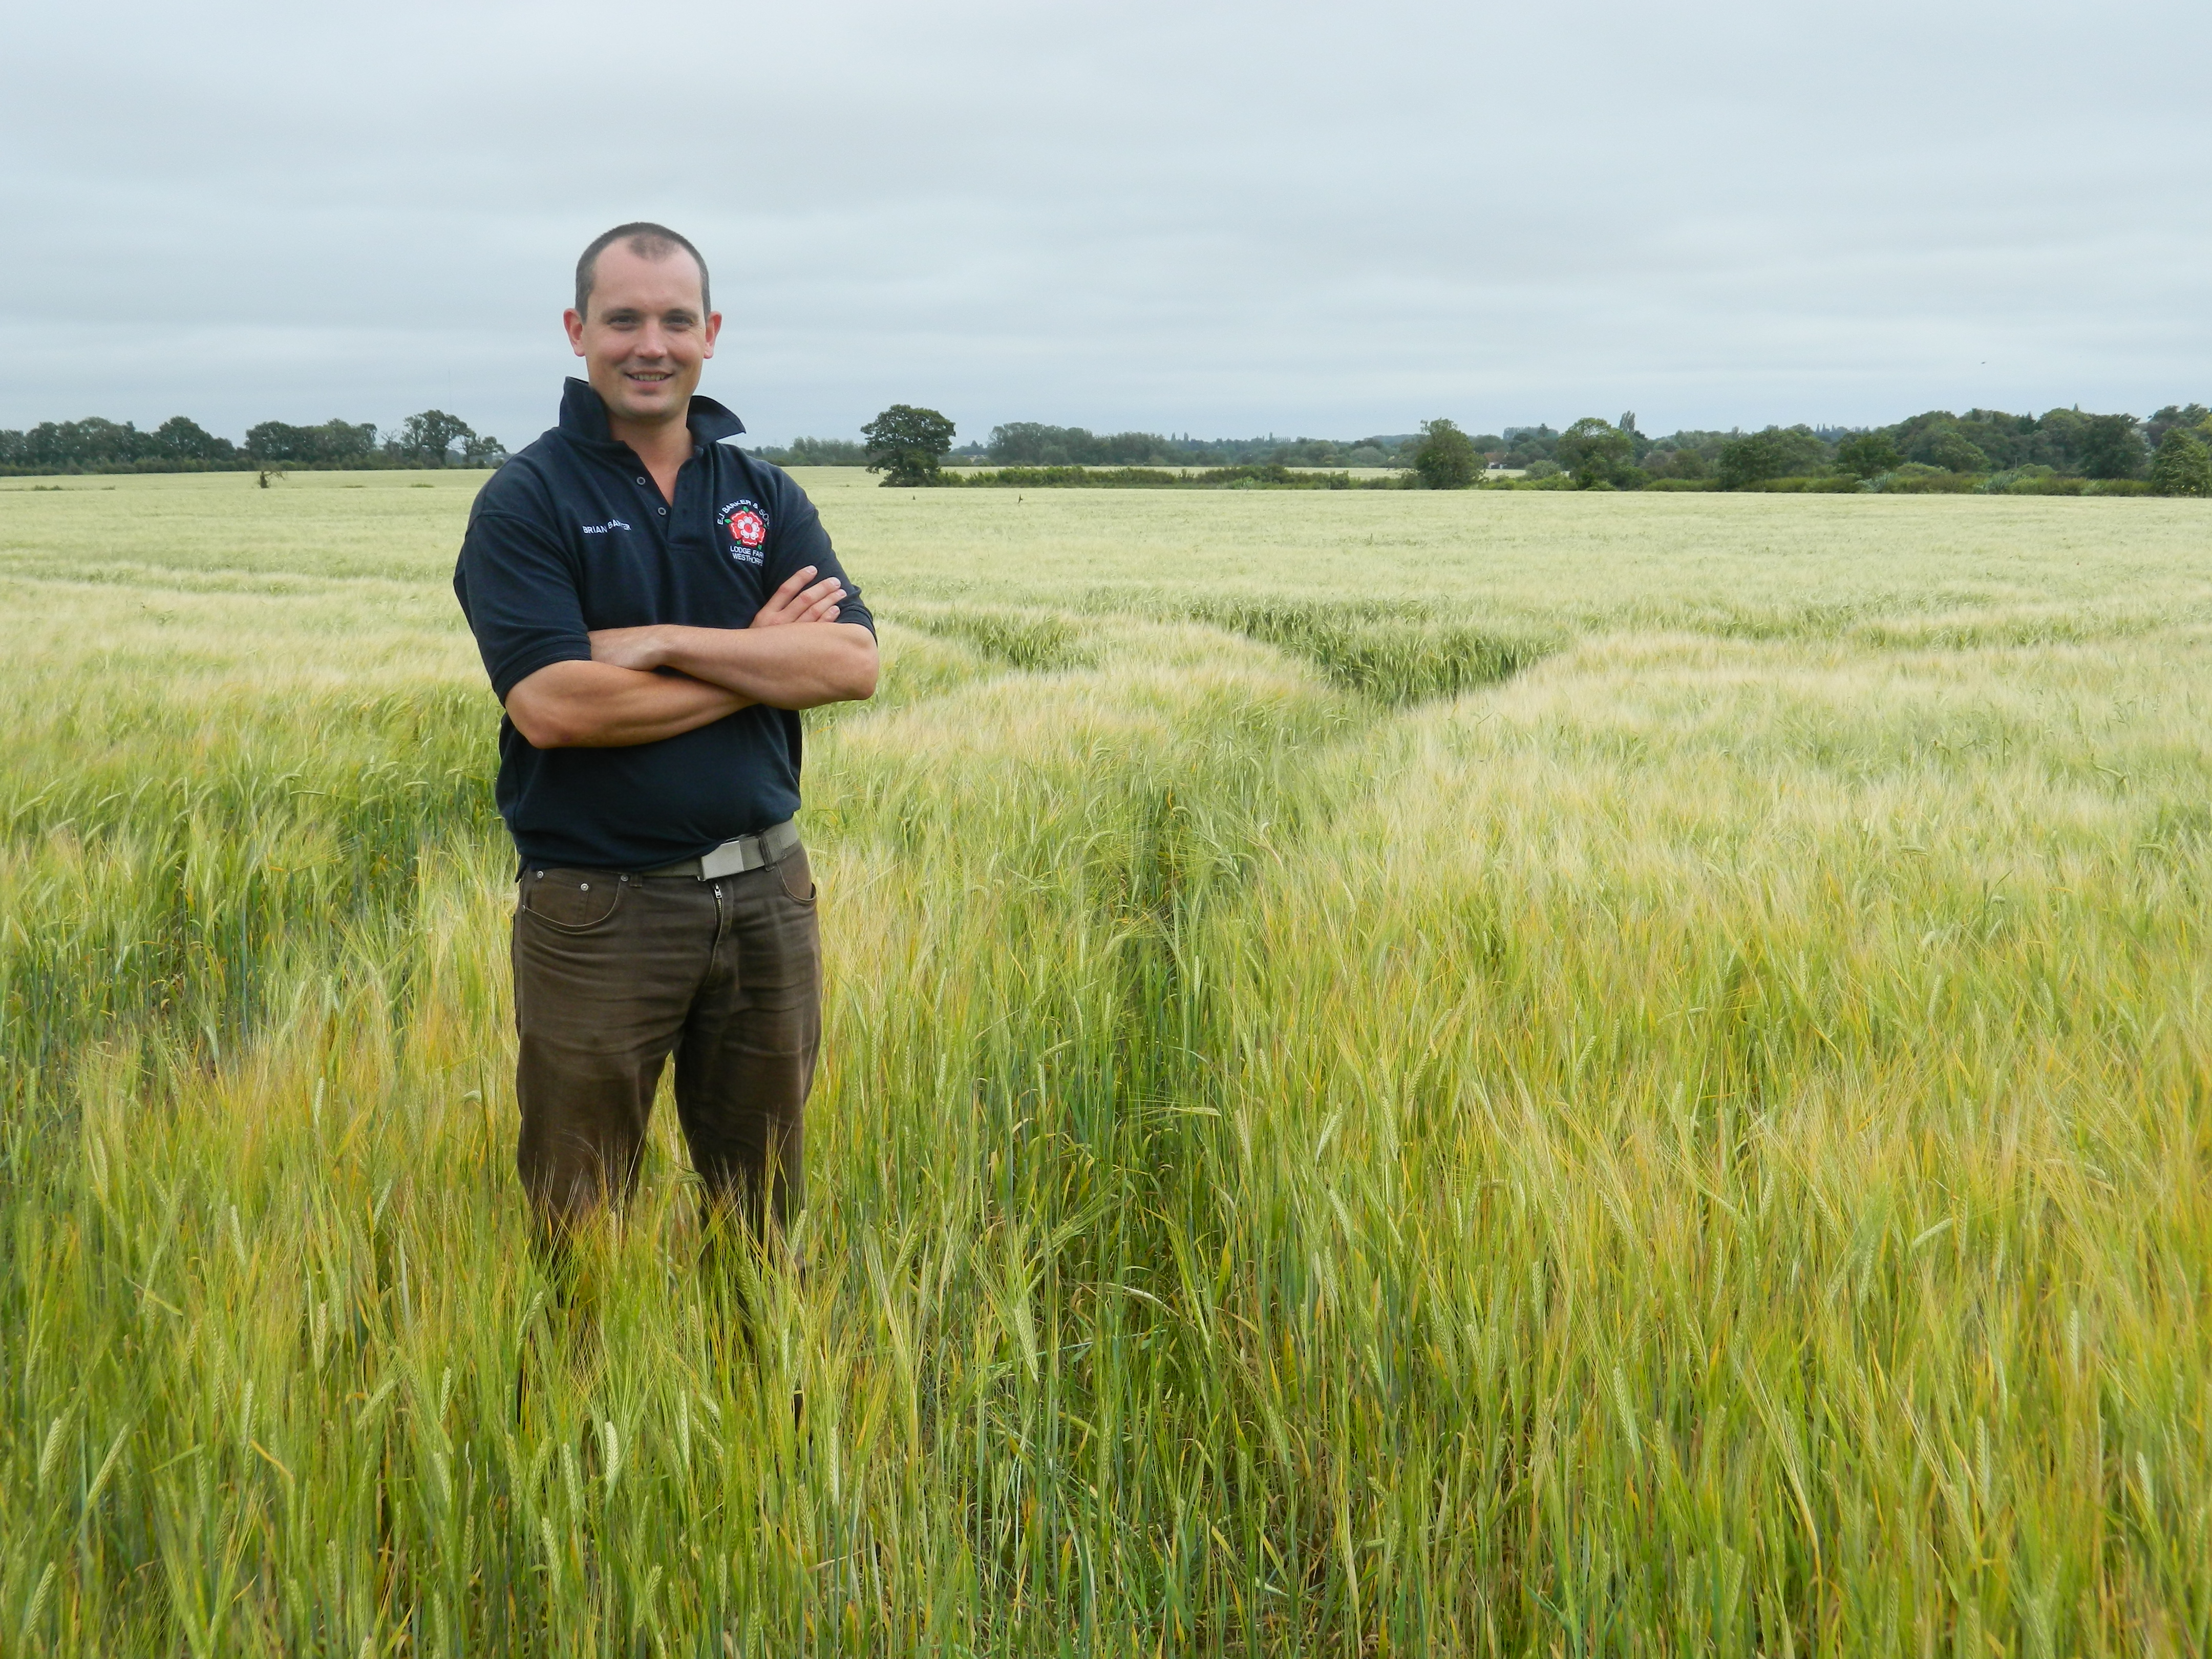 Brian Barker standing in a field of barley